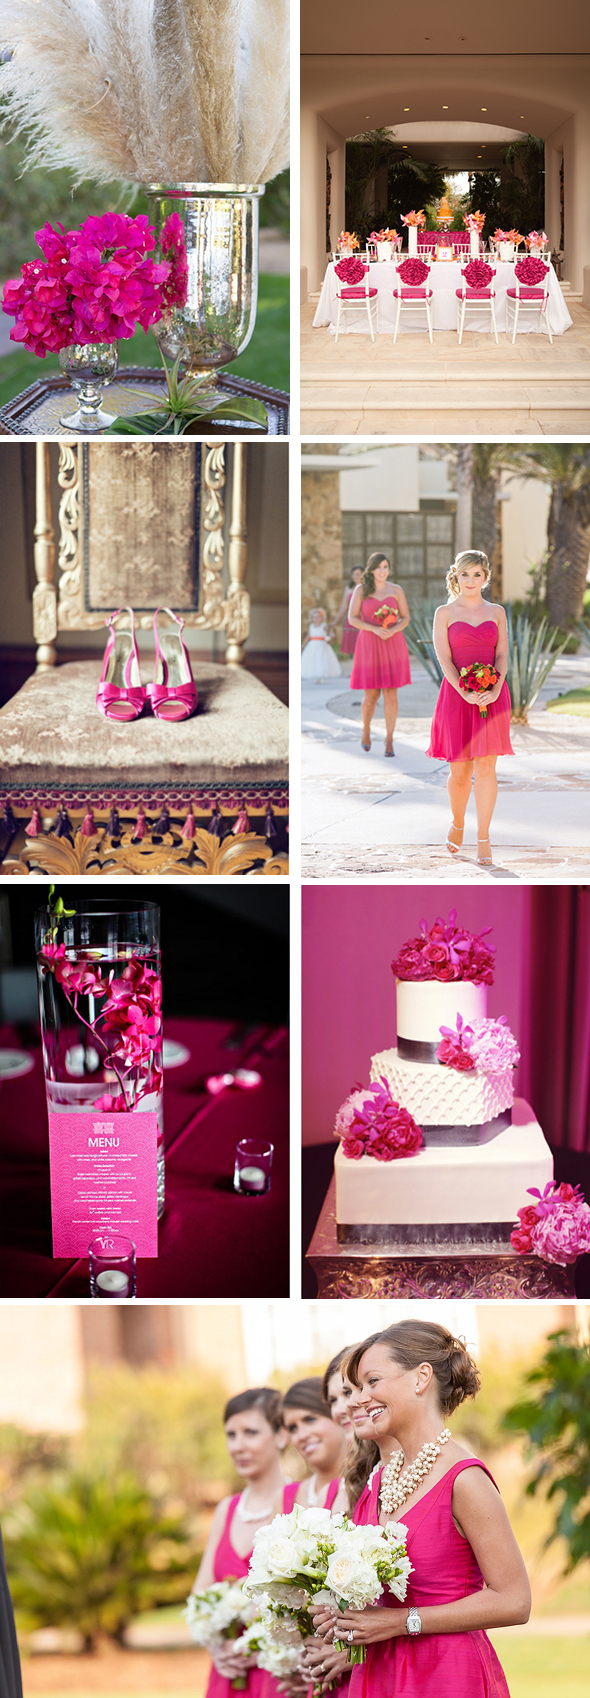 pink | The Destination Wedding Blog - Jet Fete by Bridal Bar